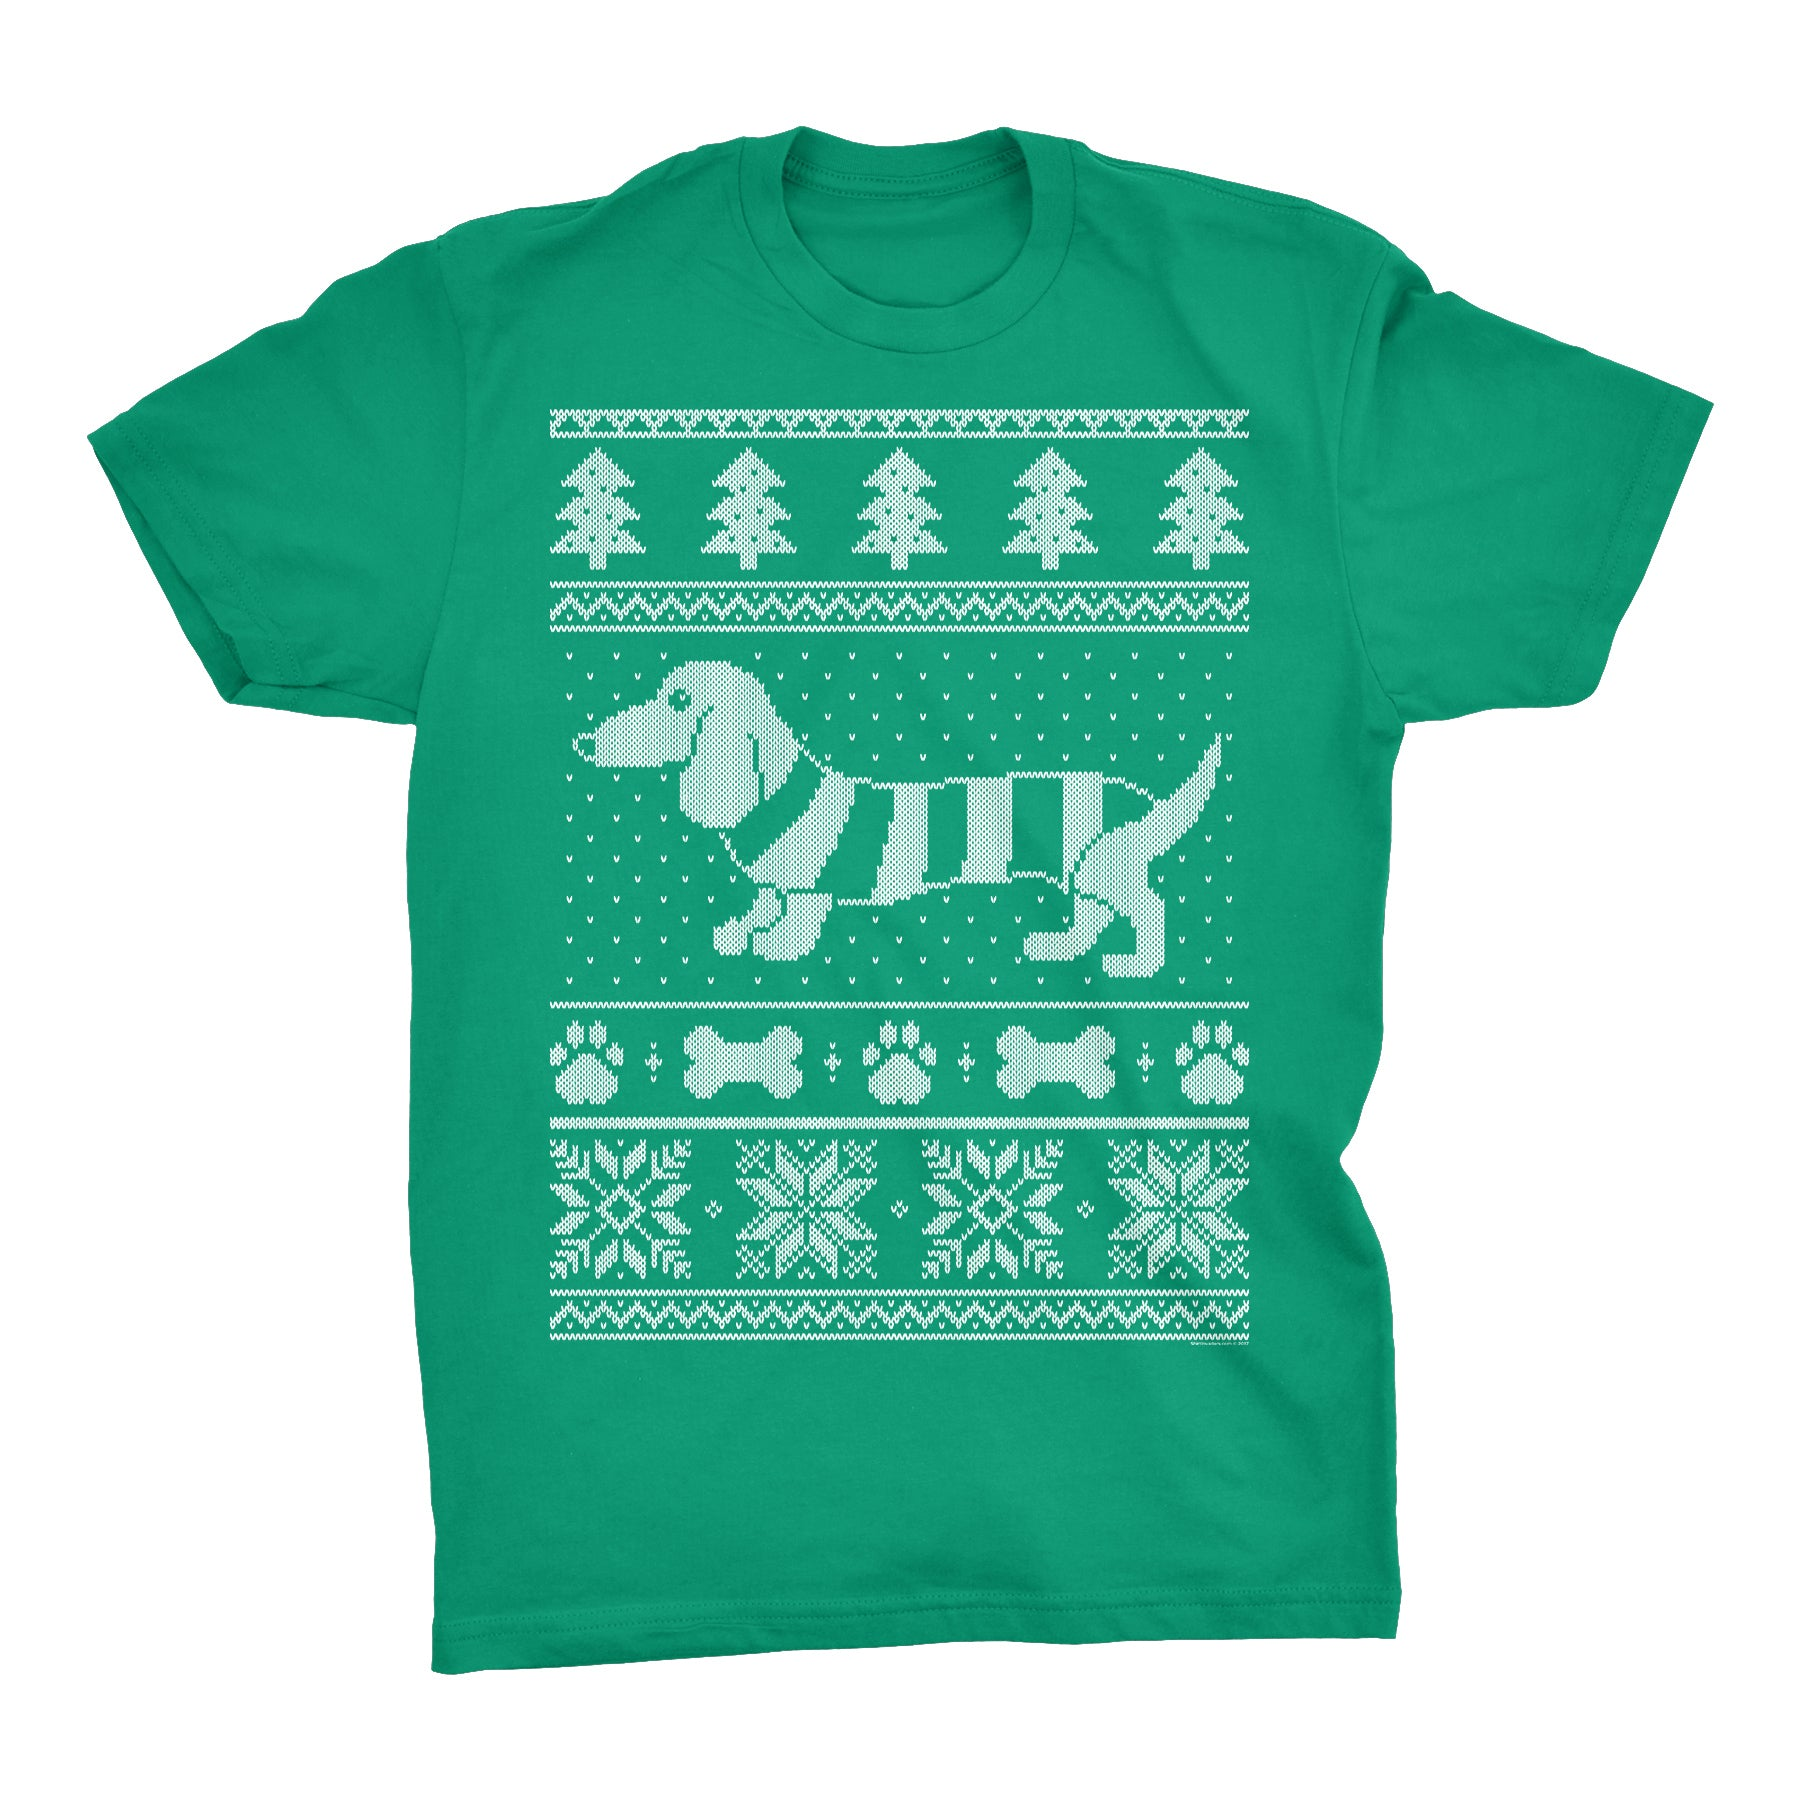 Dachshund Sweater 001 - Weenie Dog Christmas Sweater Party - T-Shirt